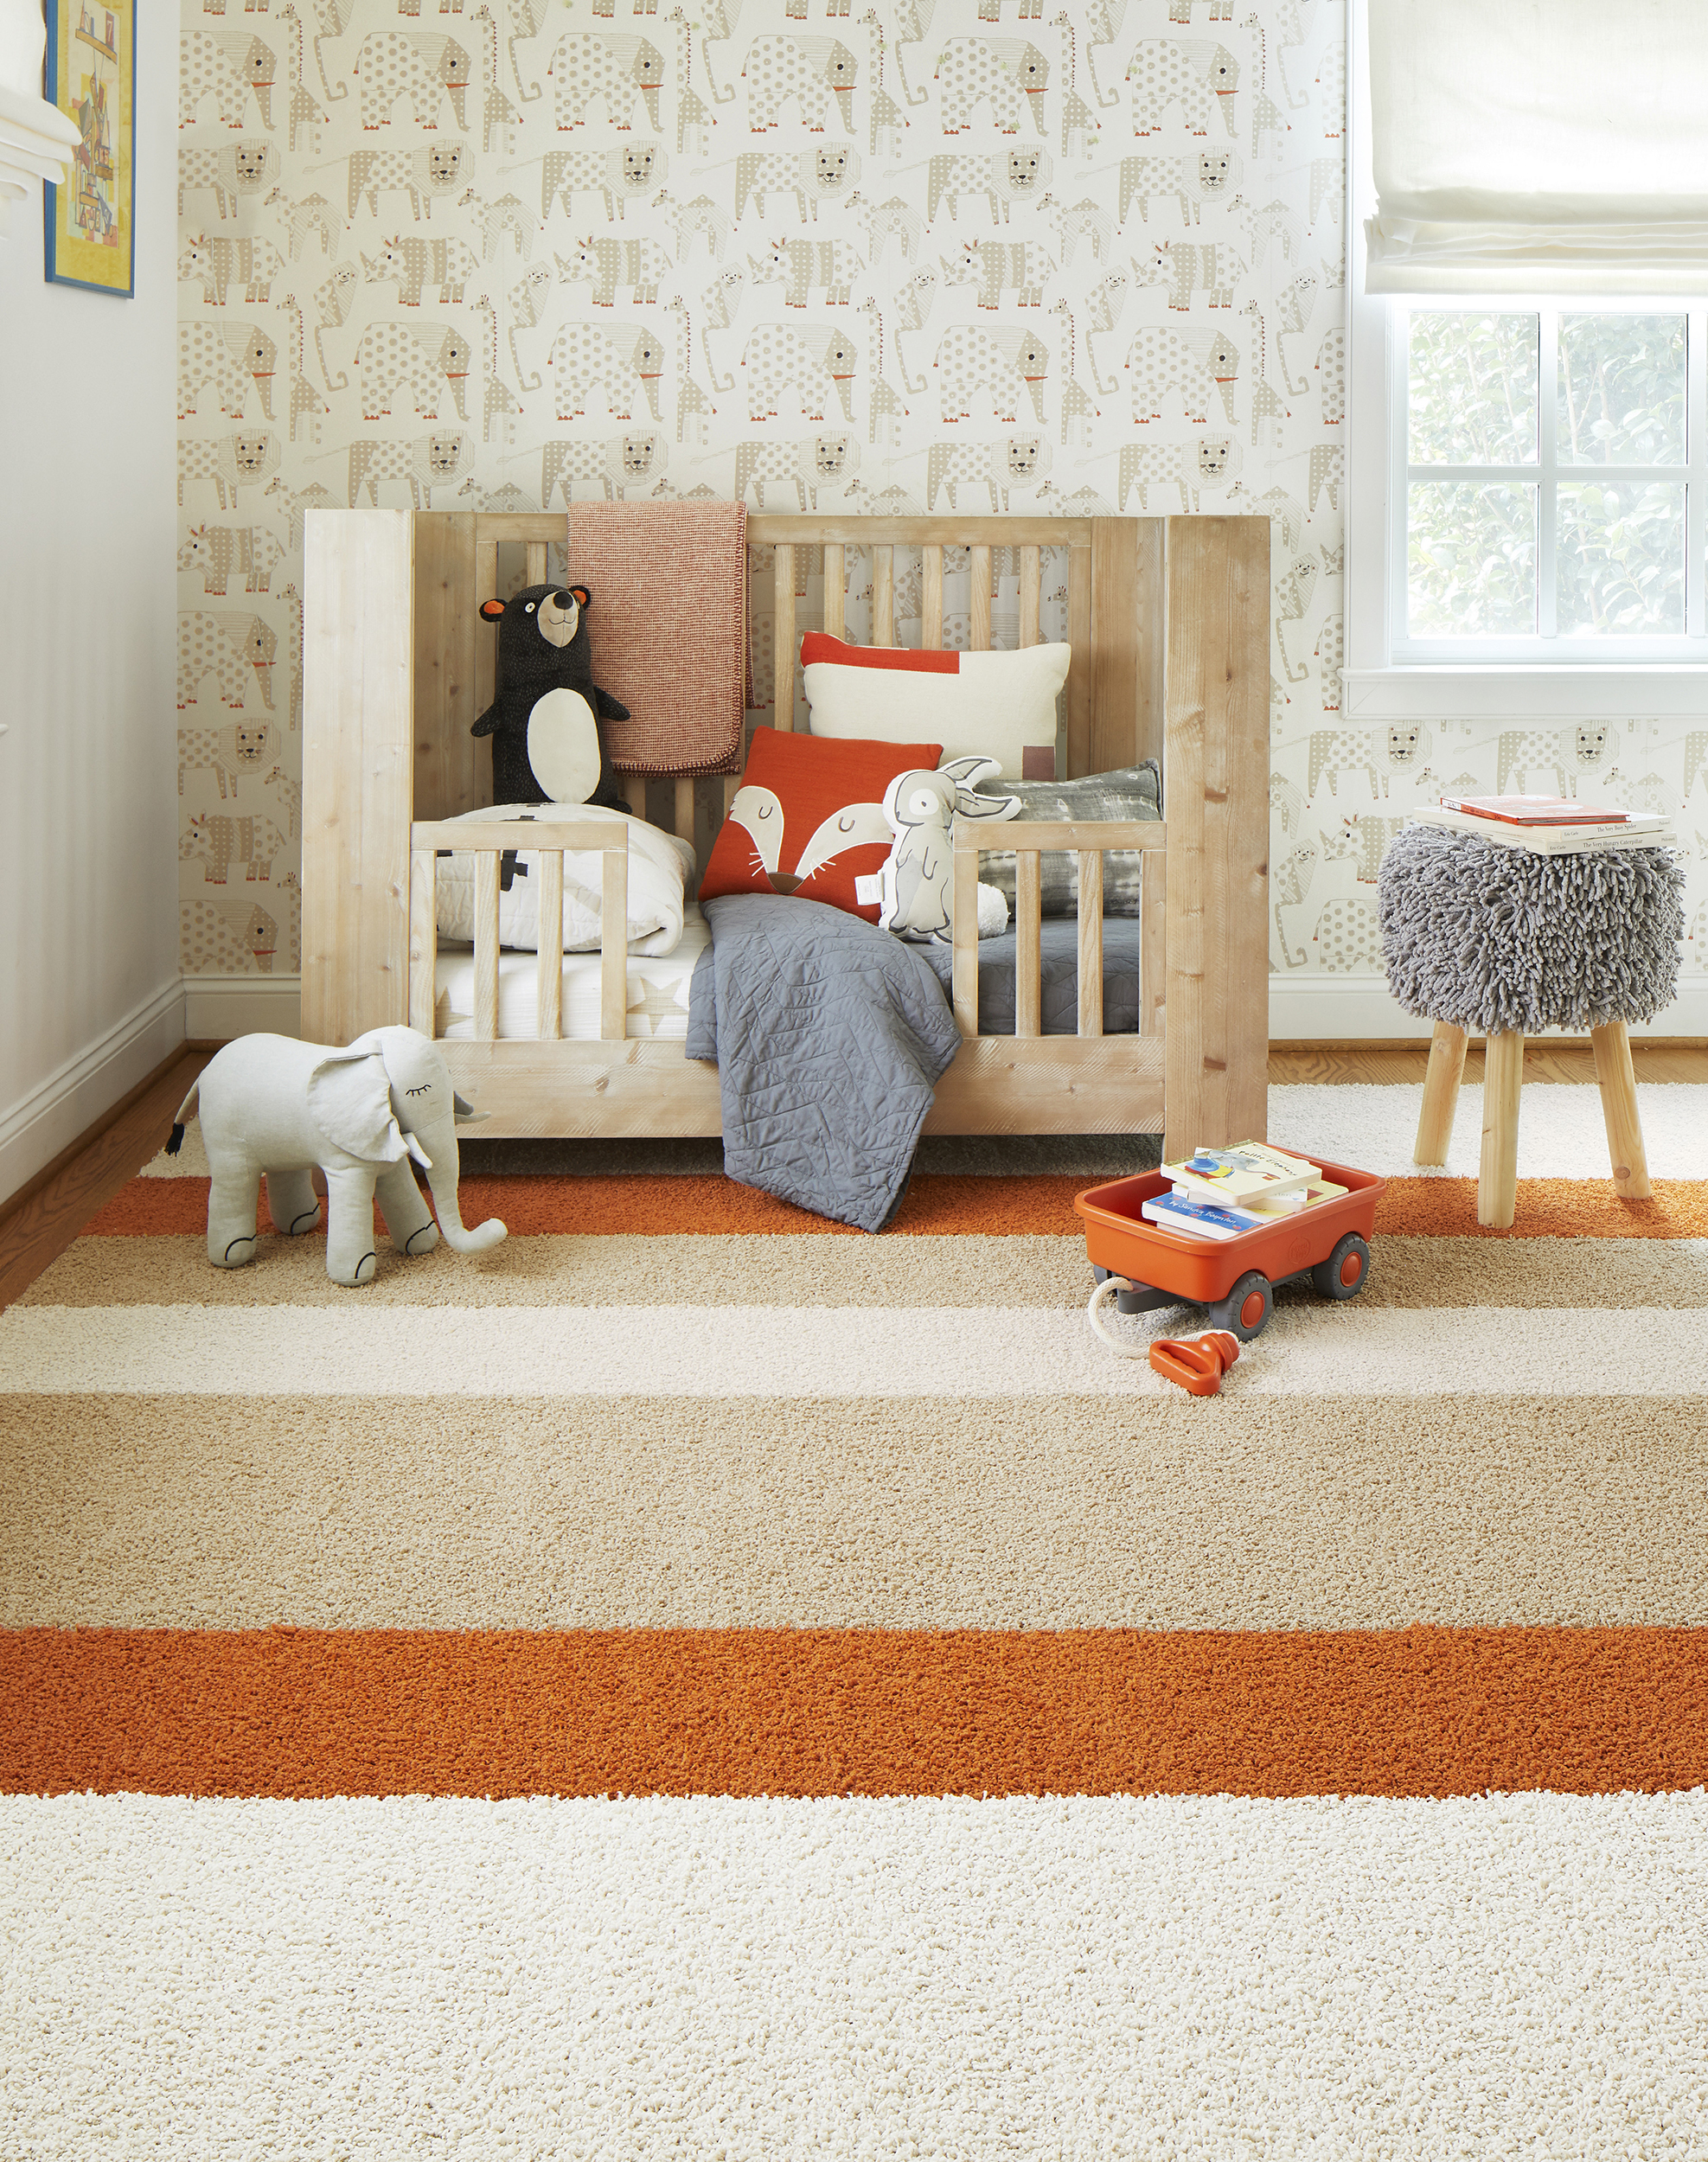 FLOR In the Deep striped nursery rug in Bone, Clementine, and Eggnog, a light wooden toddler bed, and a shaggy gray stool.